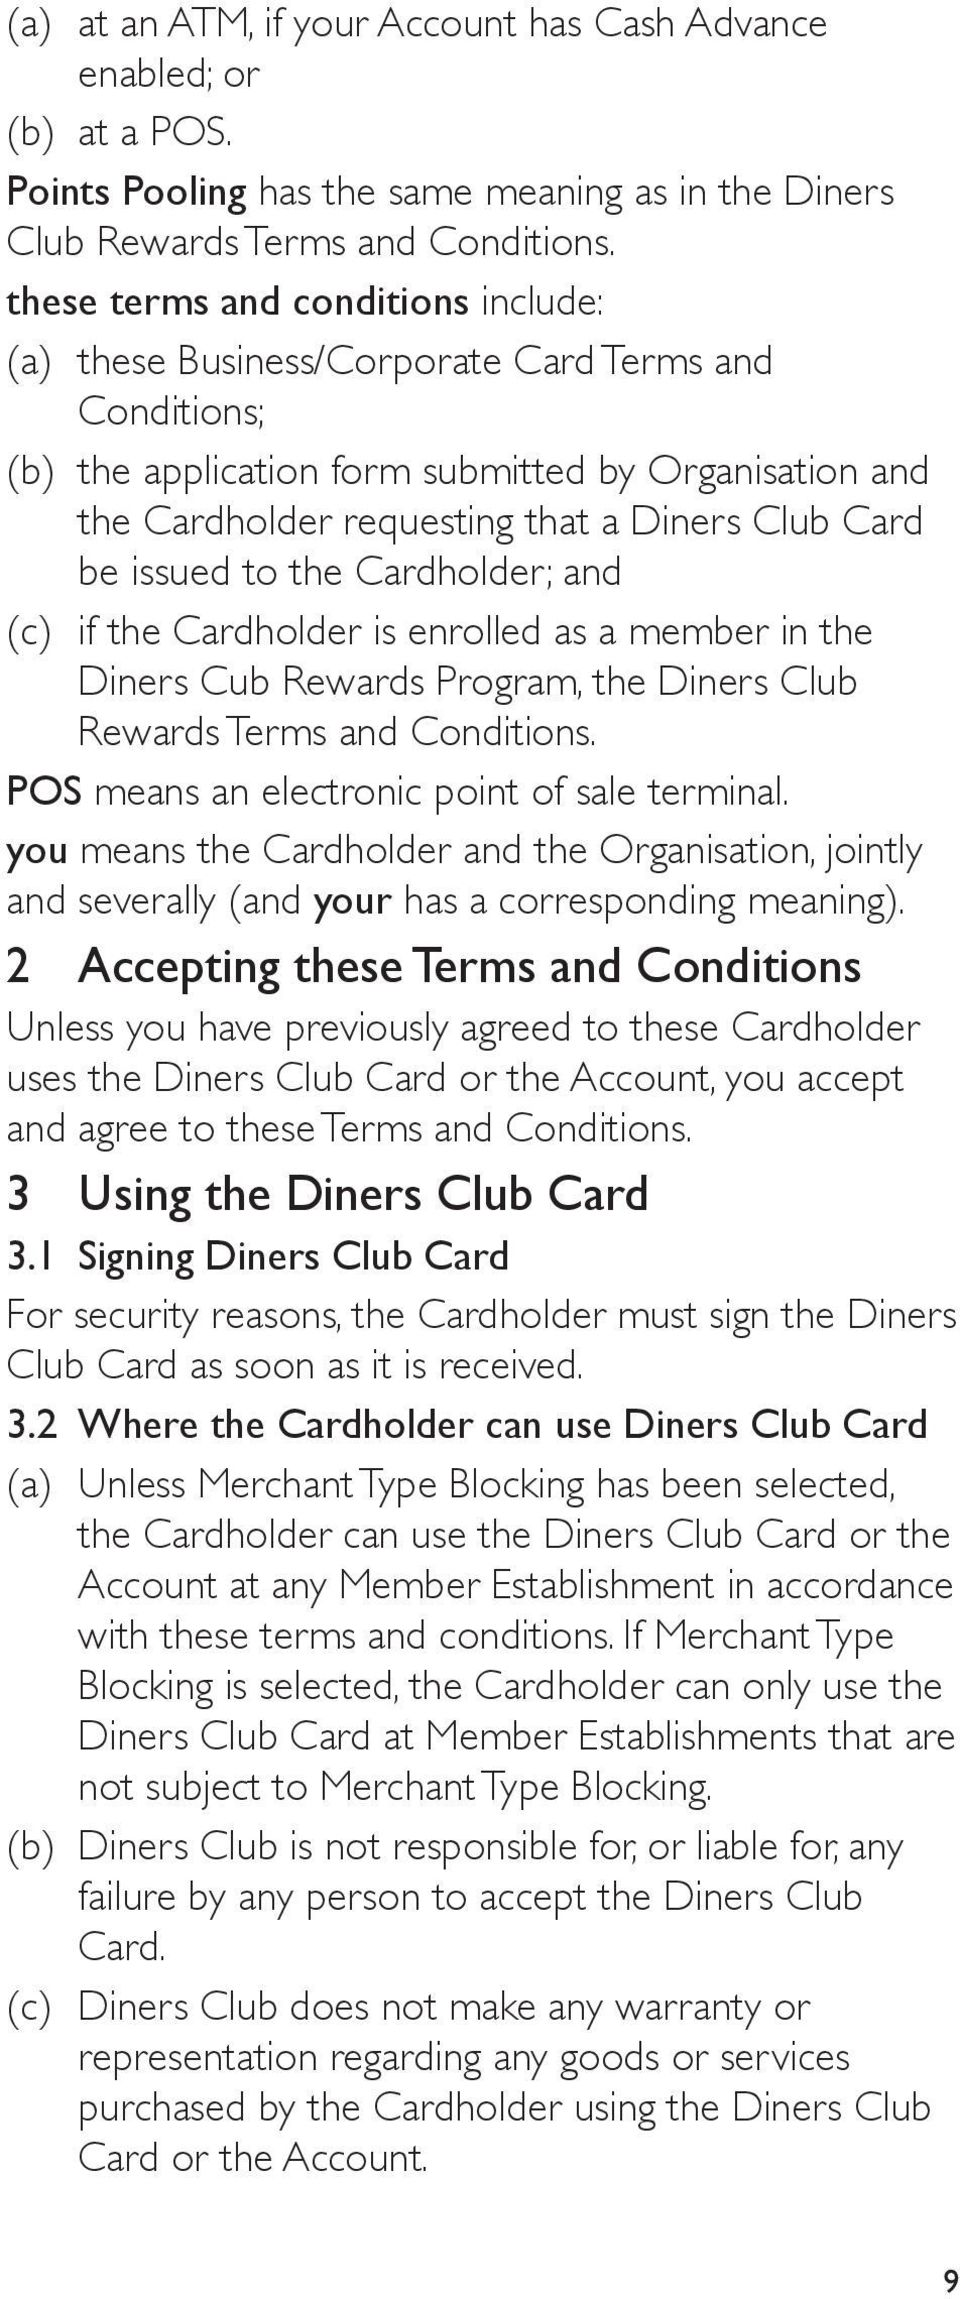 issued to the Cardholder; and (c) if the Cardholder is enrolled as a member in the Diners Cub Rewards Program, the Diners Club Rewards Terms and Conditions.